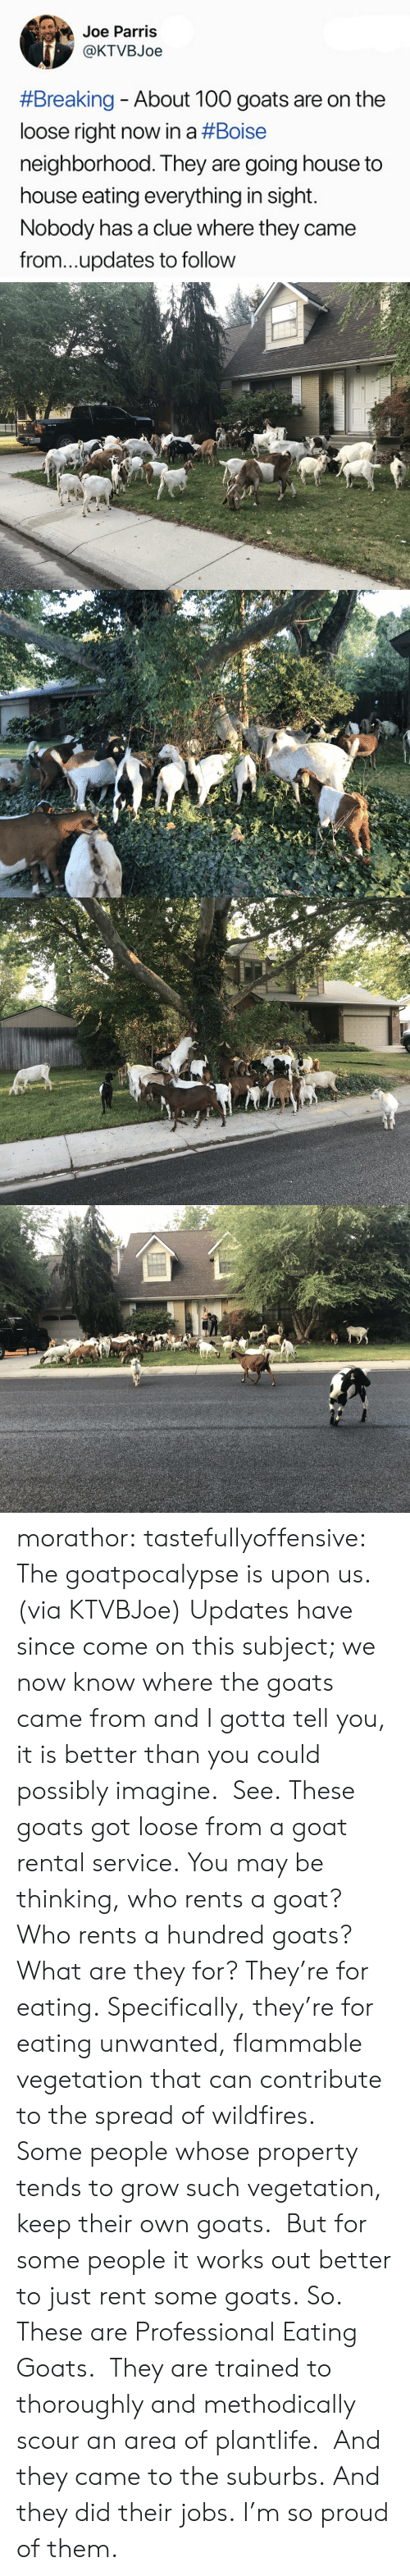 goats: Joe Parris  @KTVBJoe  #Breaking-About 100 goats are on the  loose right now in a #Boise  neighborhood. They are going house to  house eating everything in sight.  Nobody has a clue where they came  from...updates to follow morathor: tastefullyoffensive: The goatpocalypse is upon us. (via KTVBJoe) Updates have since come on this subject; we now know where the goats came from and I gotta tell you, it is better than you could possibly imagine.  See. These goats got loose from a goat rental service. You may be thinking, who rents a goat?  Who rents a hundred goats?  What are they for? They're for eating. Specifically, they're for eating unwanted, flammable vegetation that can contribute to the spread of wildfires.  Some people whose property tends to grow such vegetation, keep their own goats.  But for some people it works out better to just rent some goats. So. These are Professional Eating Goats.  They are trained to thoroughly and methodically scour an area of plantlife.  And they came to the suburbs. And they did their jobs. I'm so proud of them.